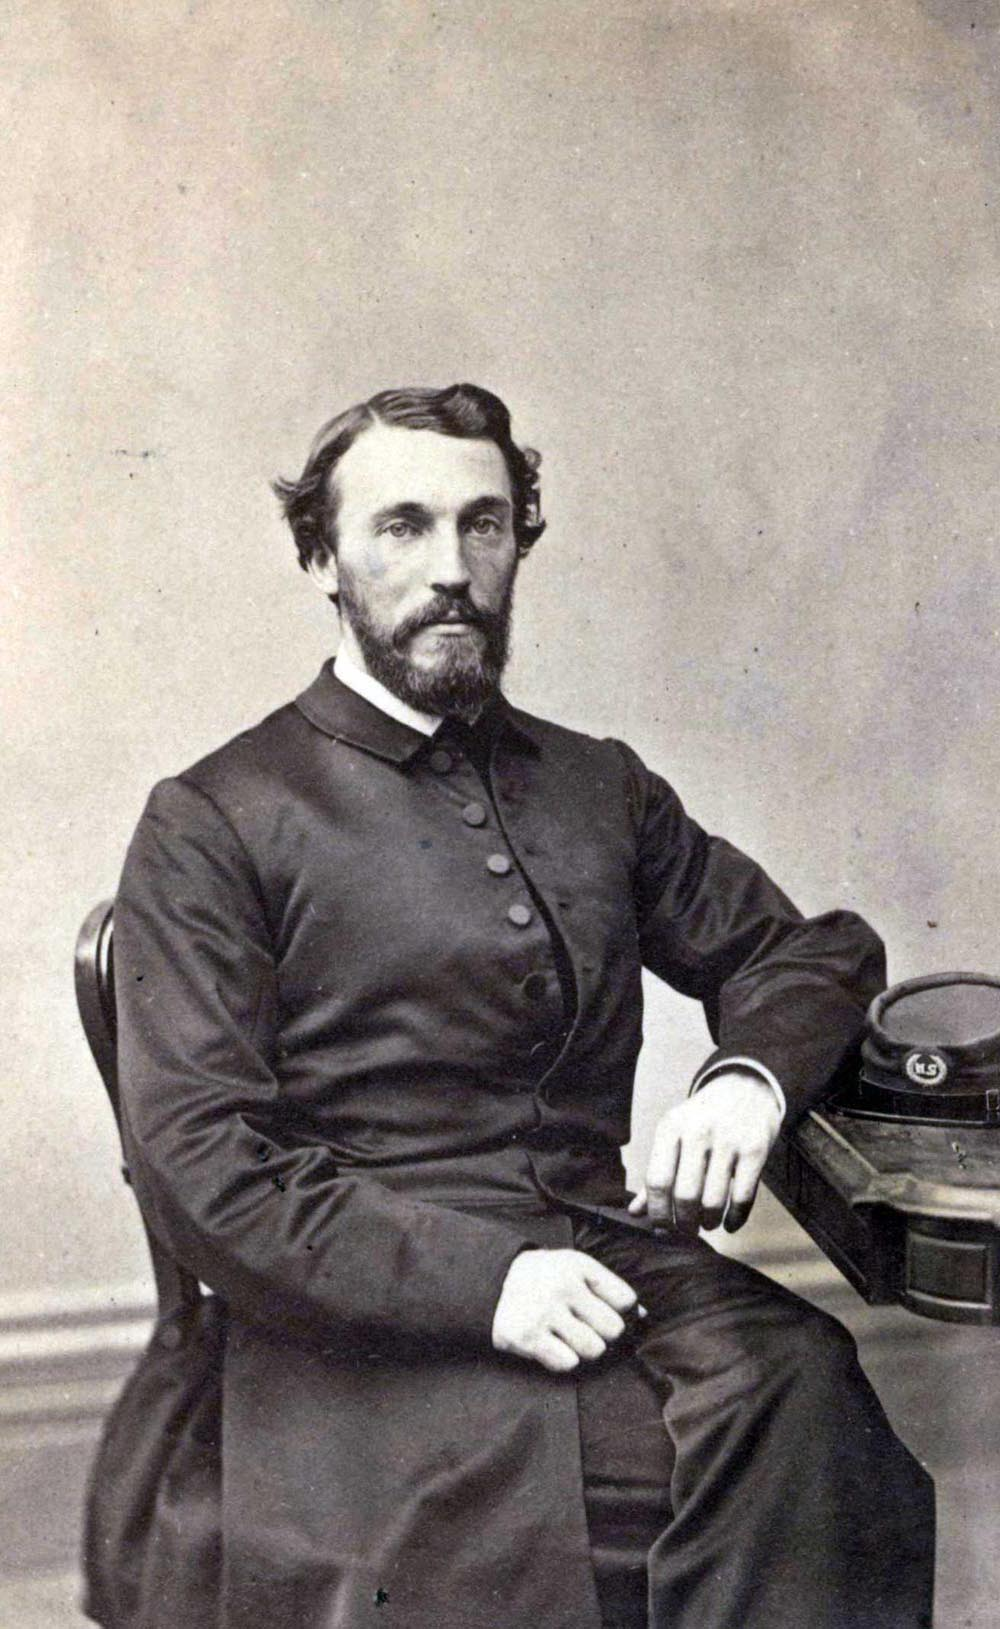 Photo of Chaplain Humphreys